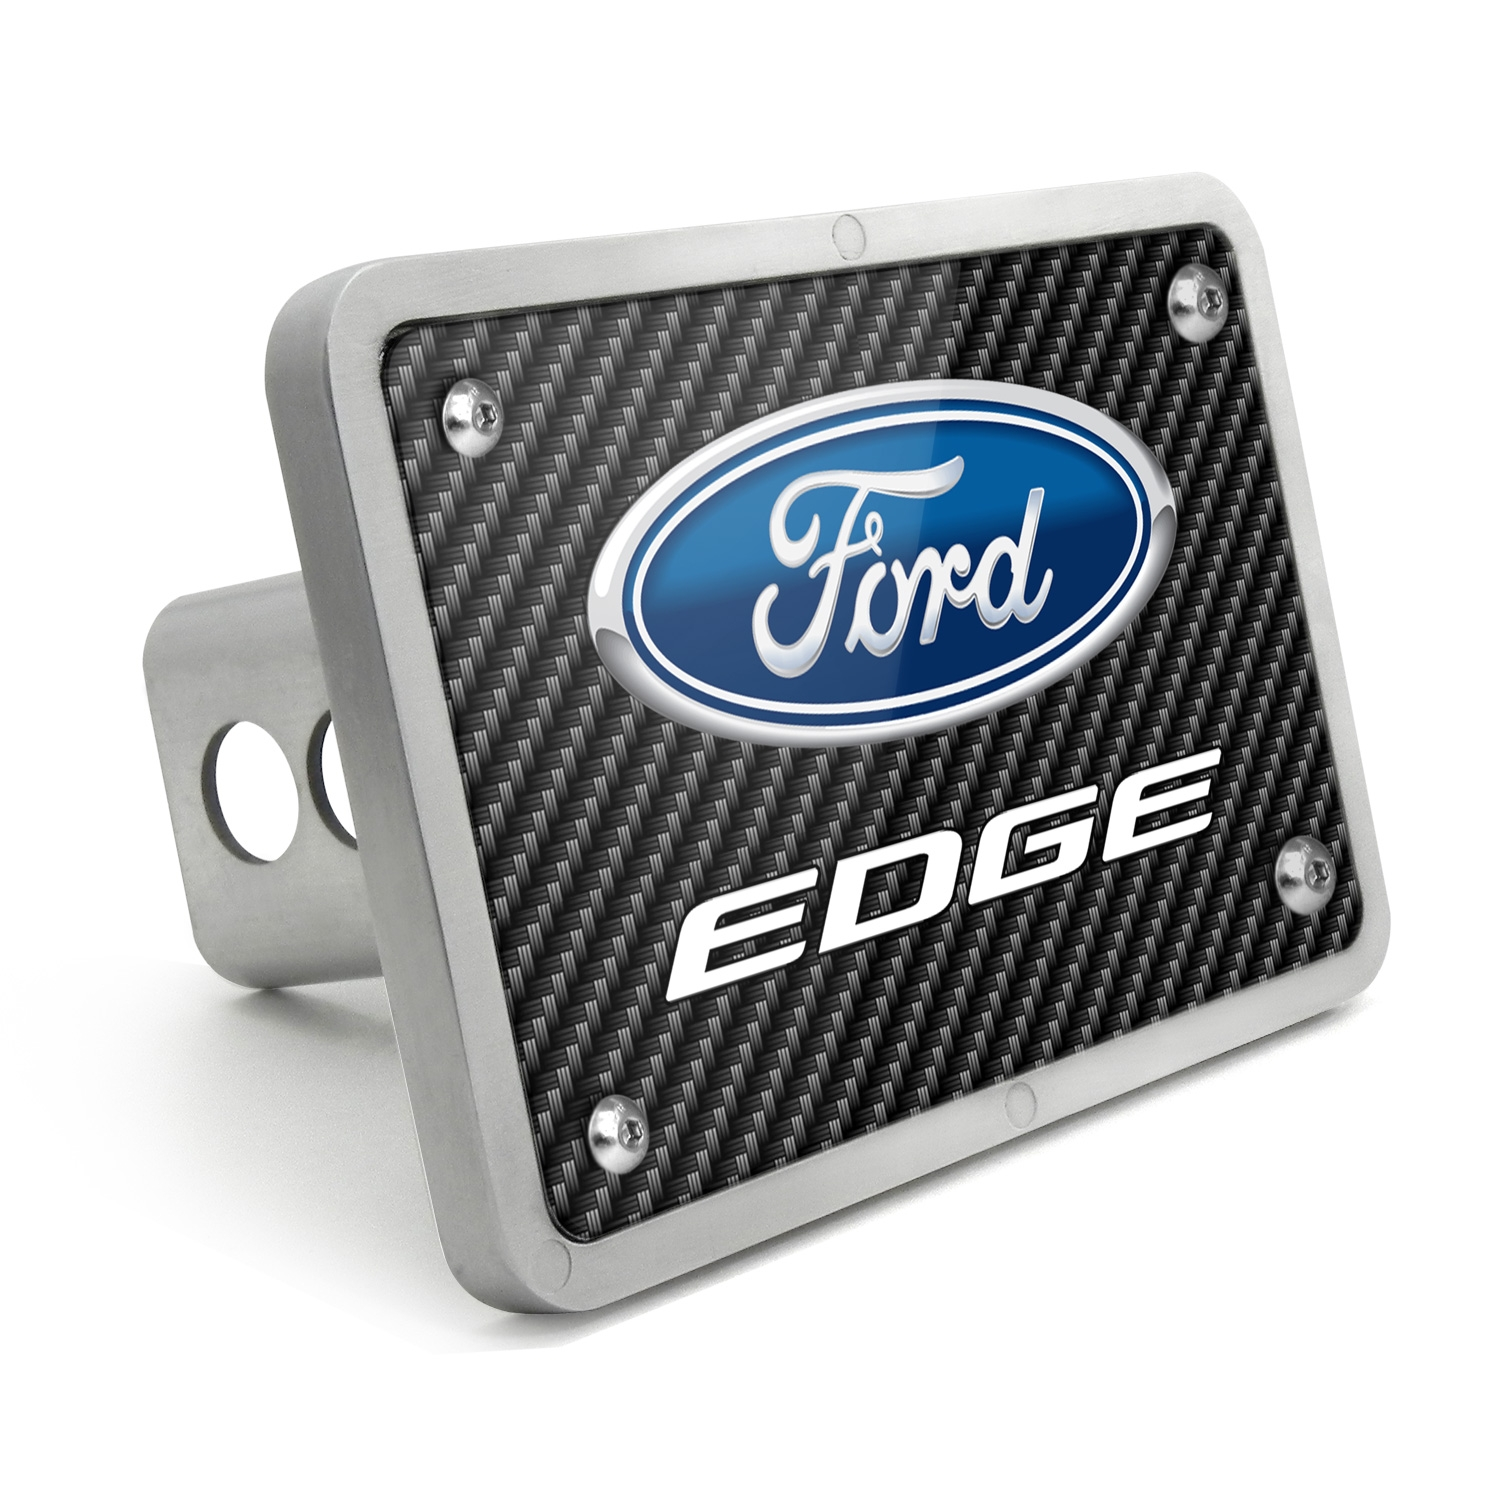 Ford Edge Black Carbon Fiber Texture Plate Billet Aluminum 2 inch Tow Hitch Cover